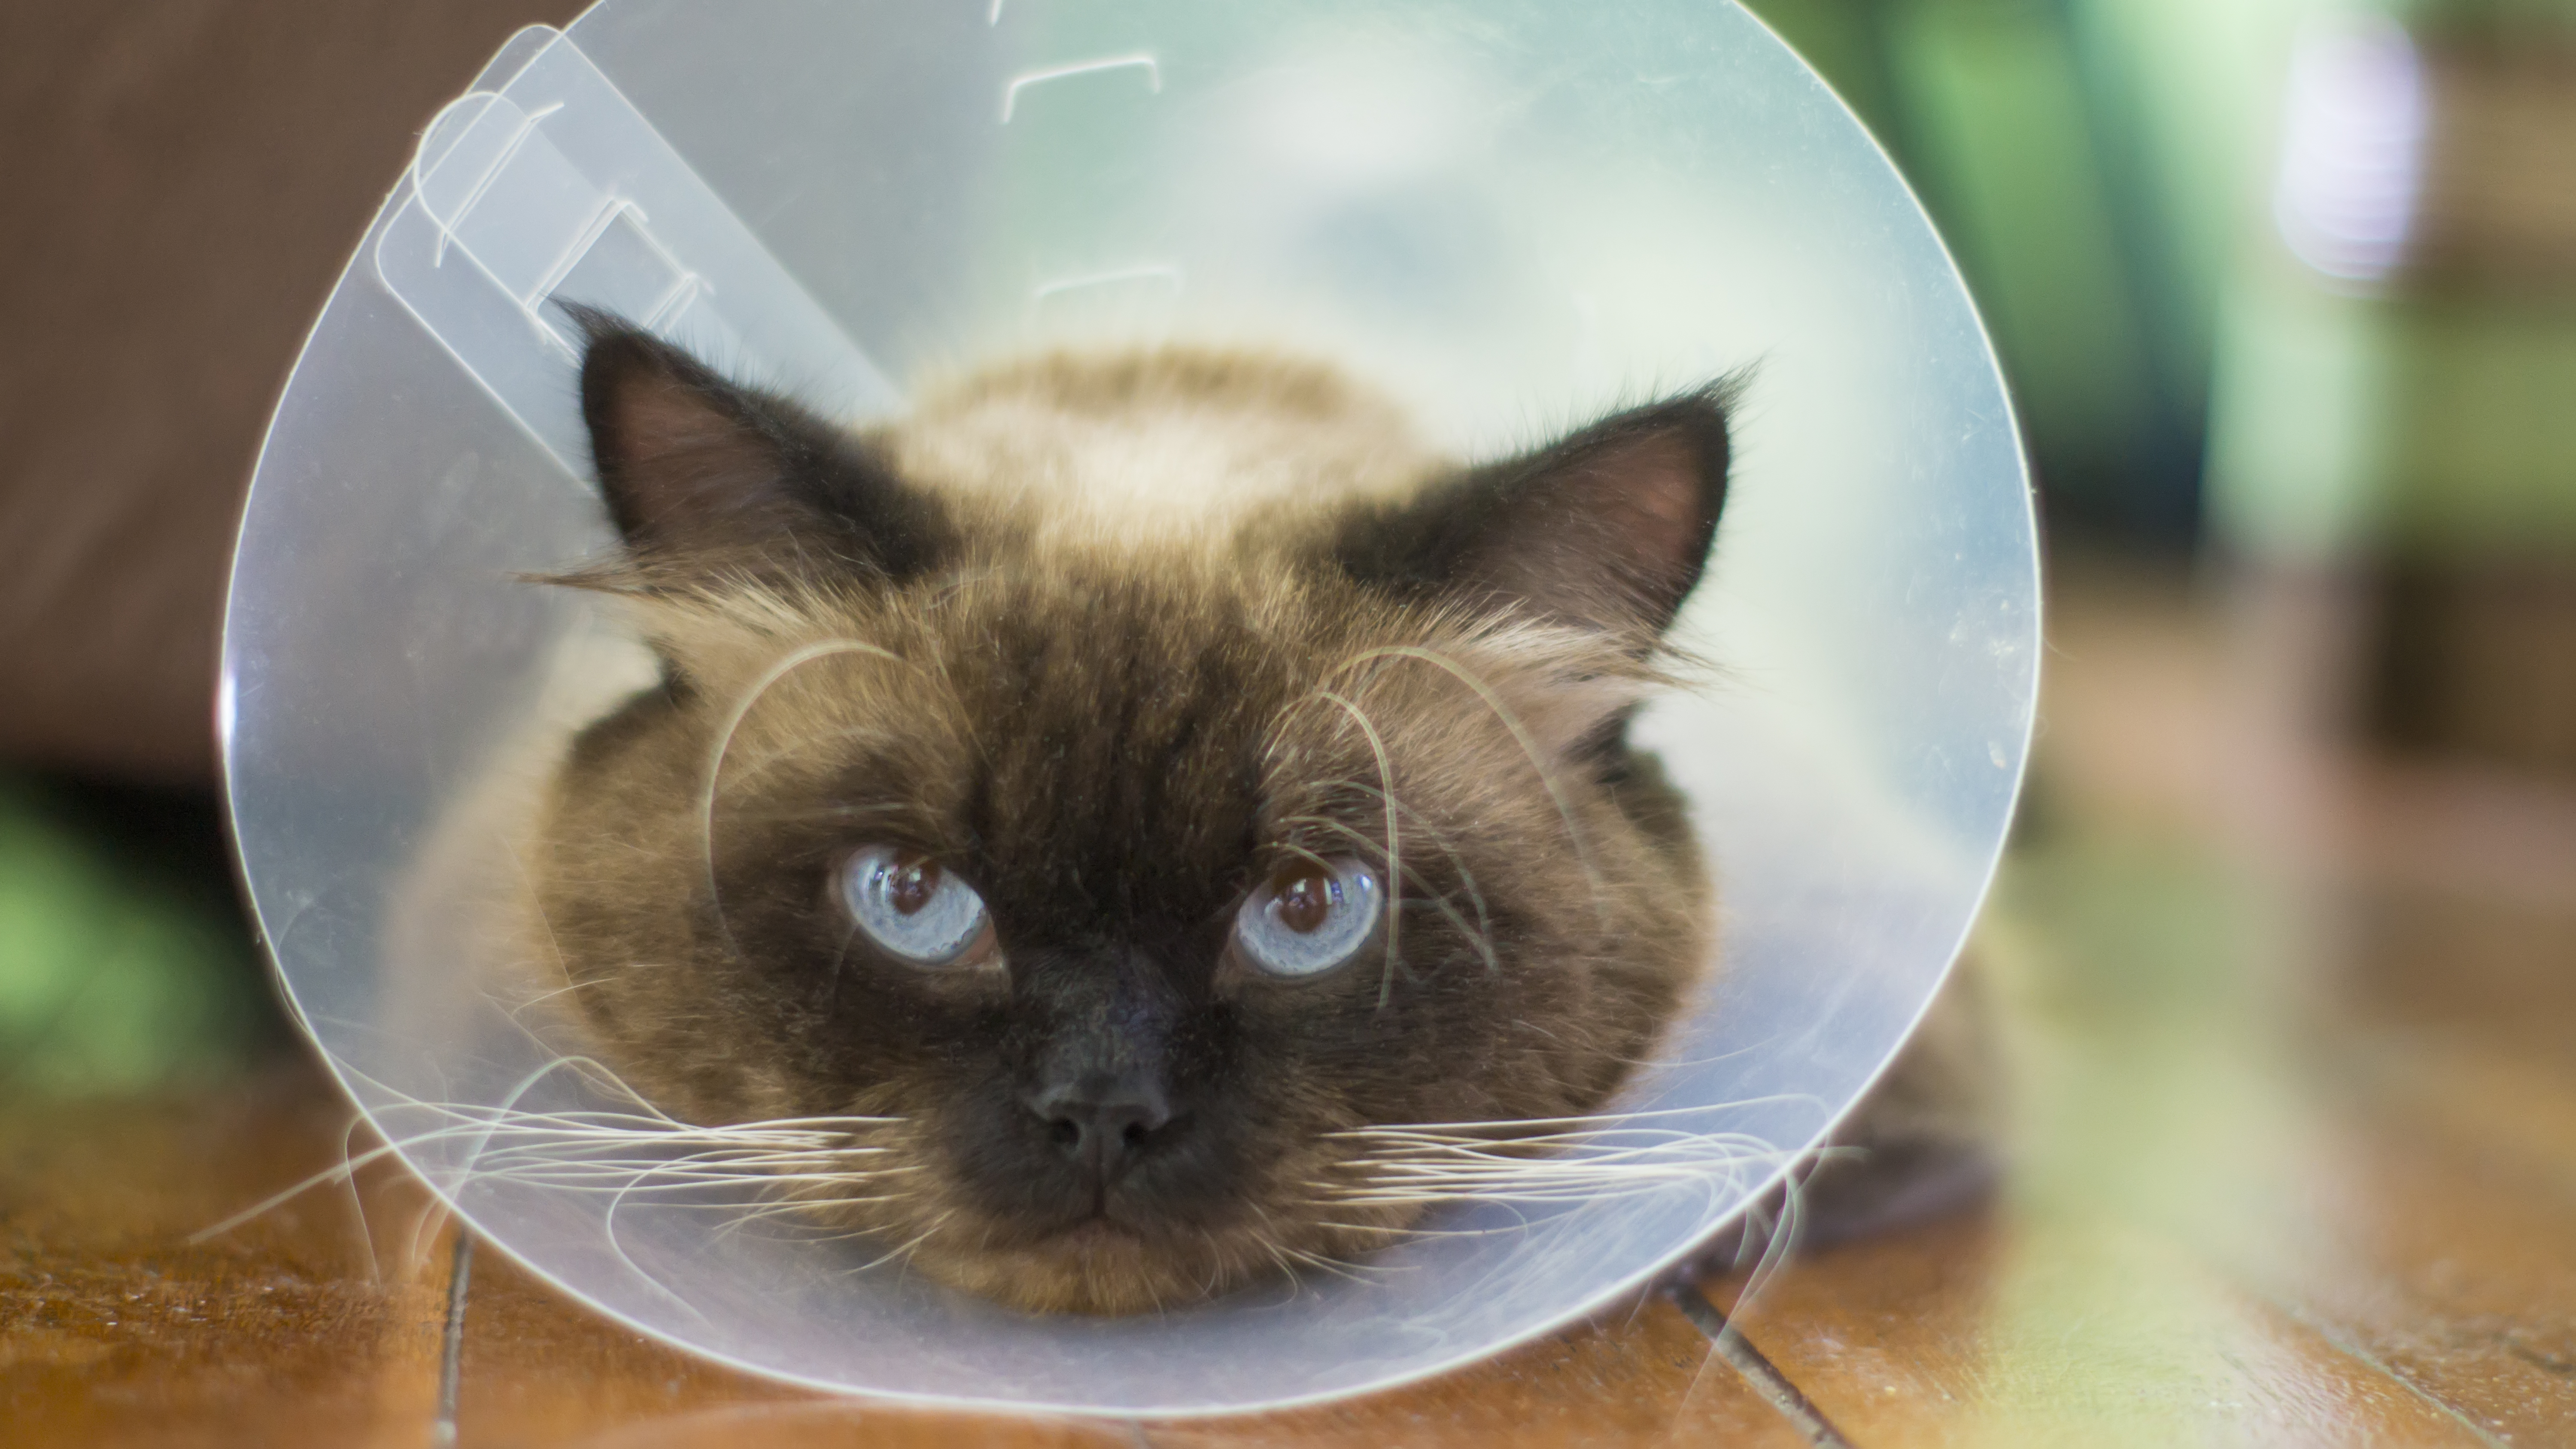 How to Feed a Cat Who is Wearing a Cone Around Its Head | Cuteness